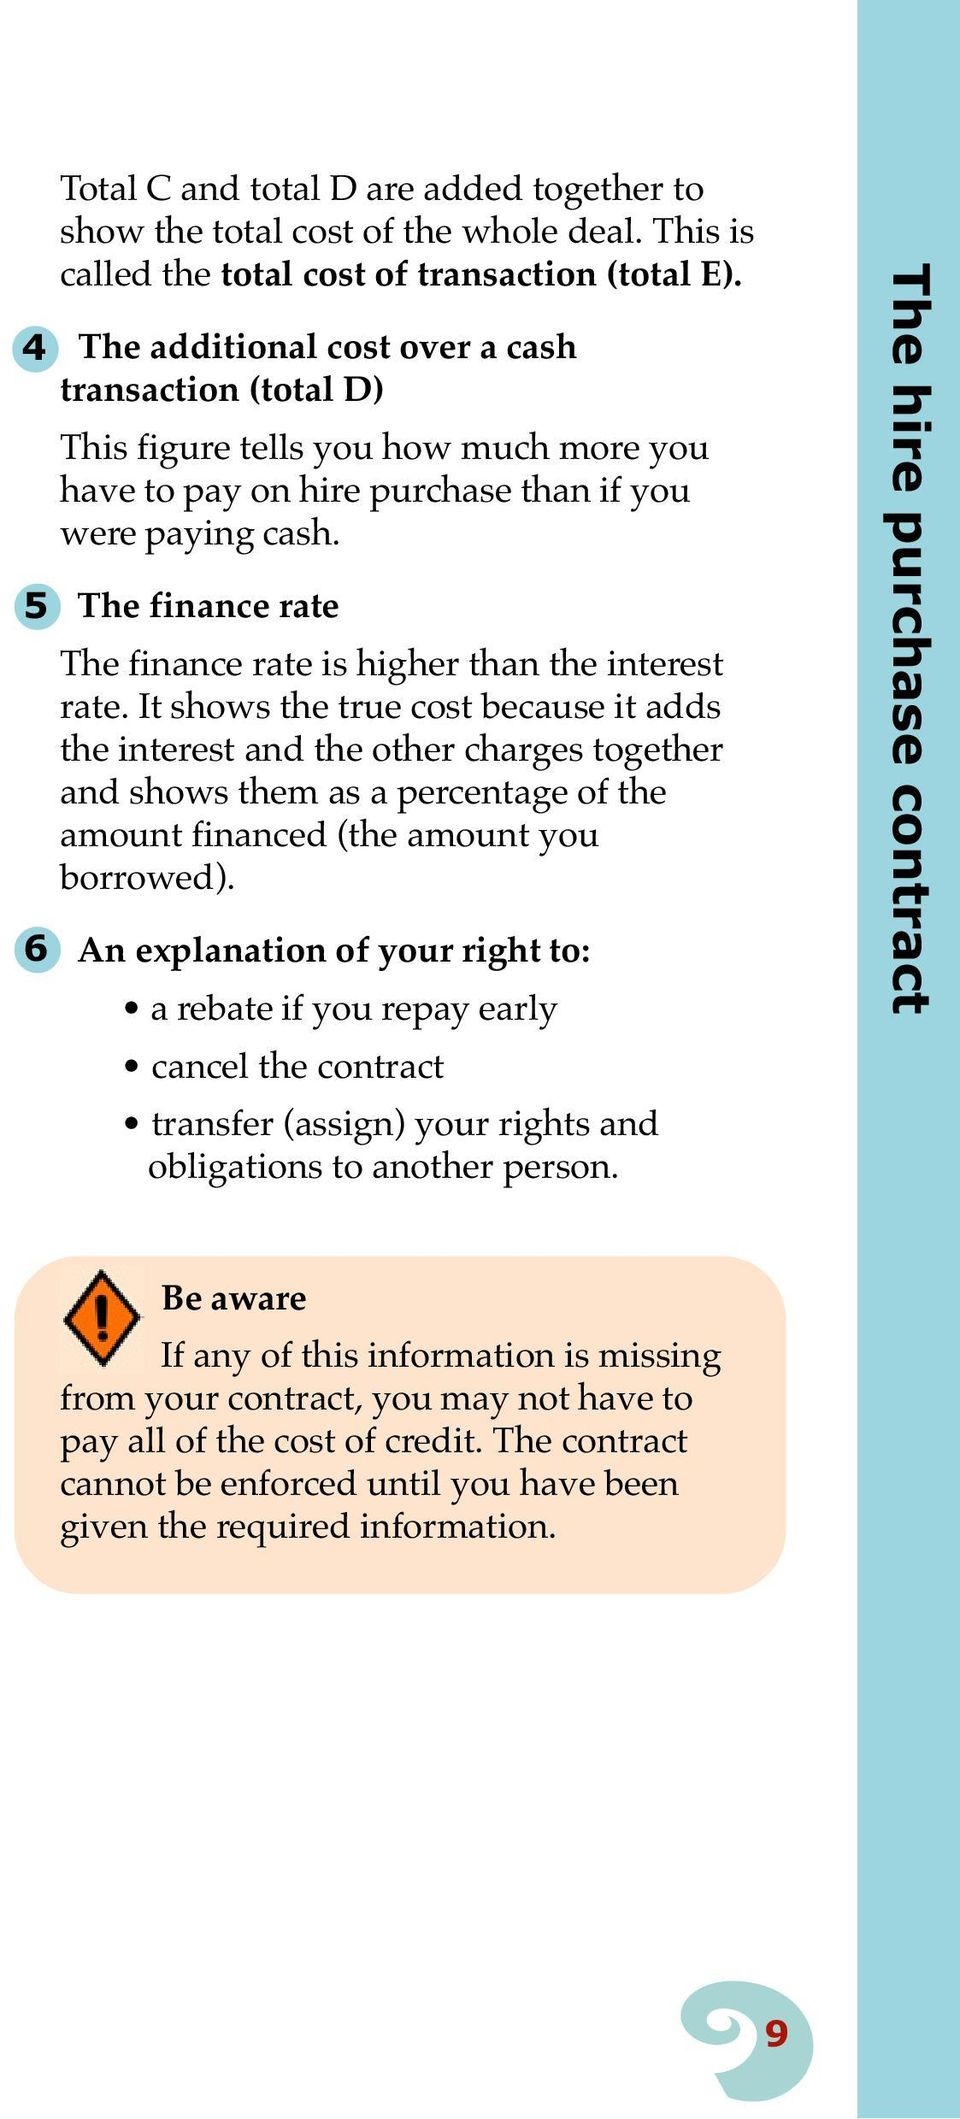 5 The finance rate The finance rate is higher than the interest rate.